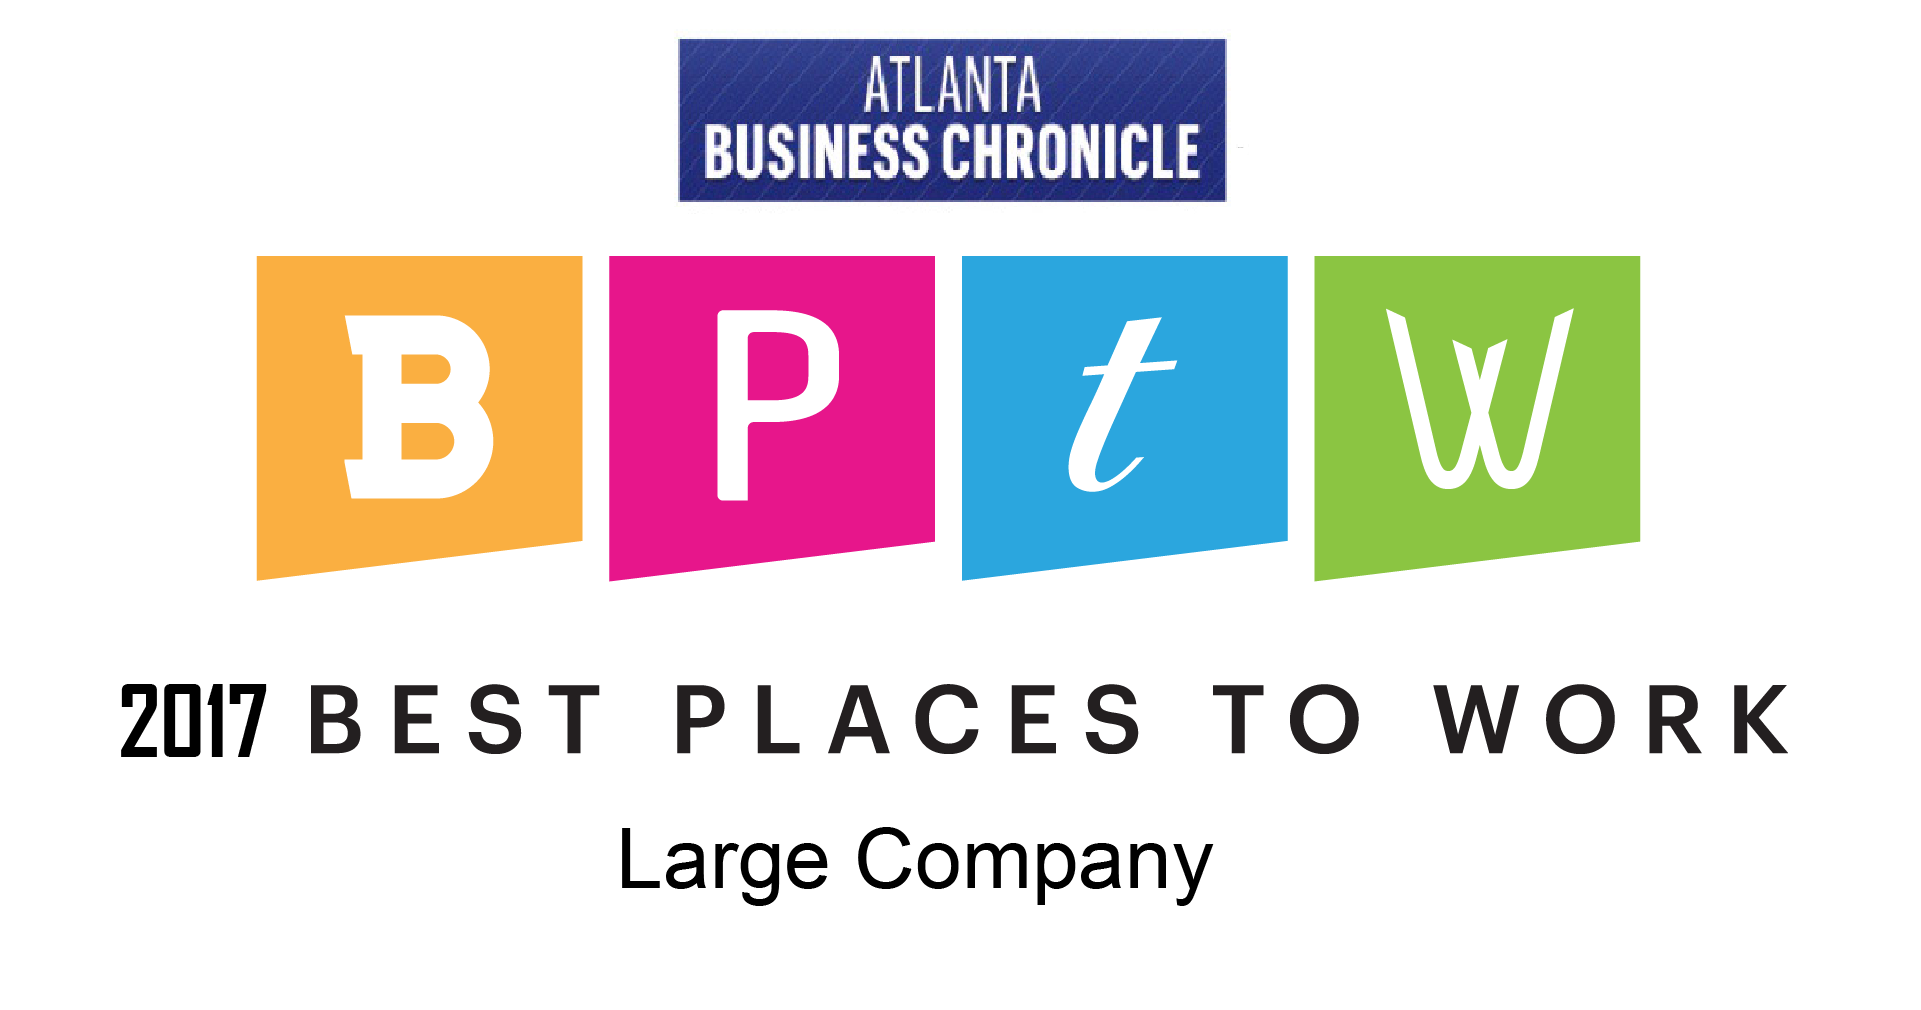 SOS Named to Best Places to Work